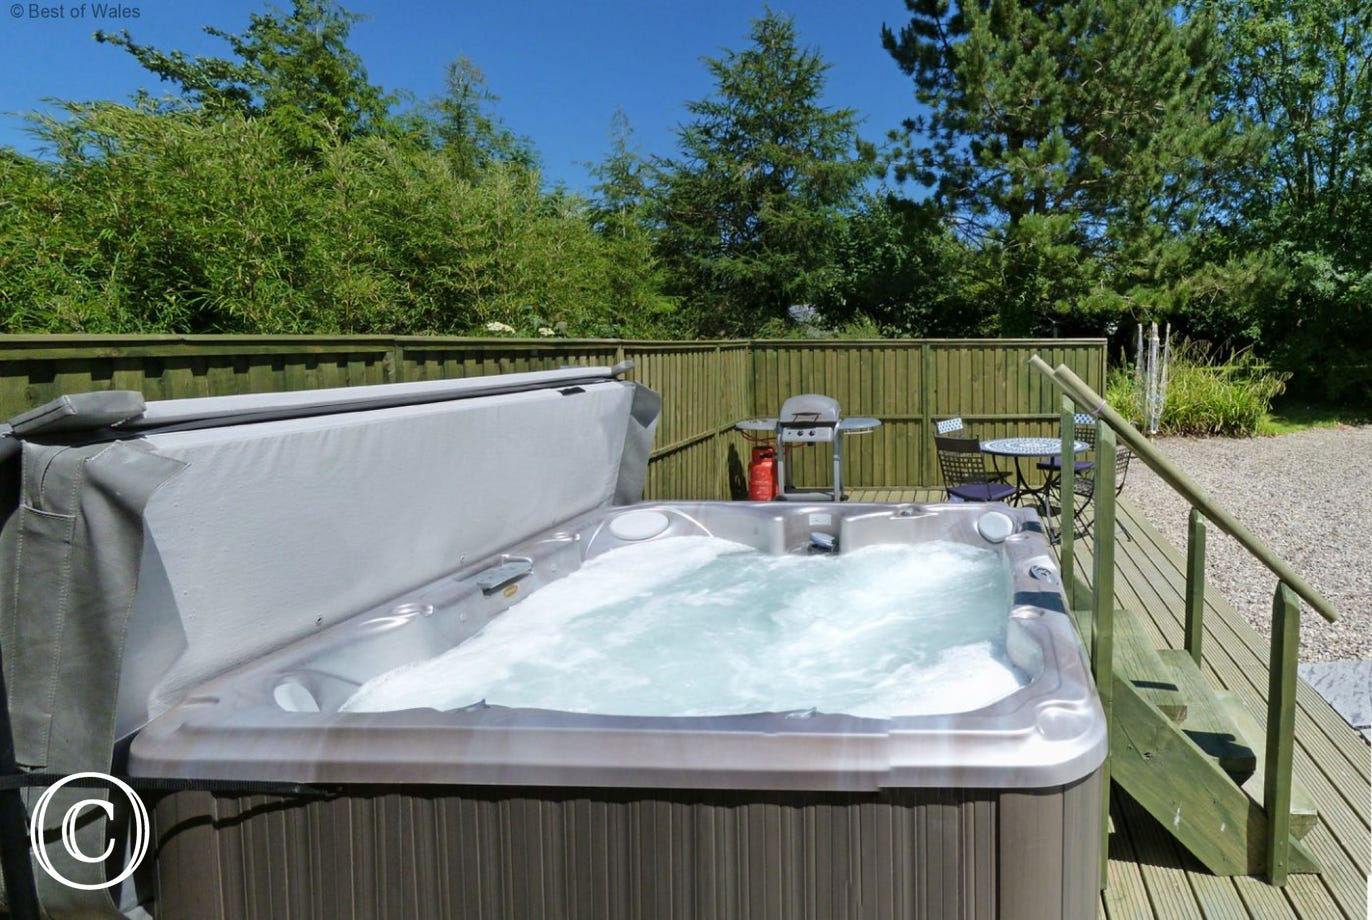 5 star self-catering cottage in Ceredigion with Hot Tub